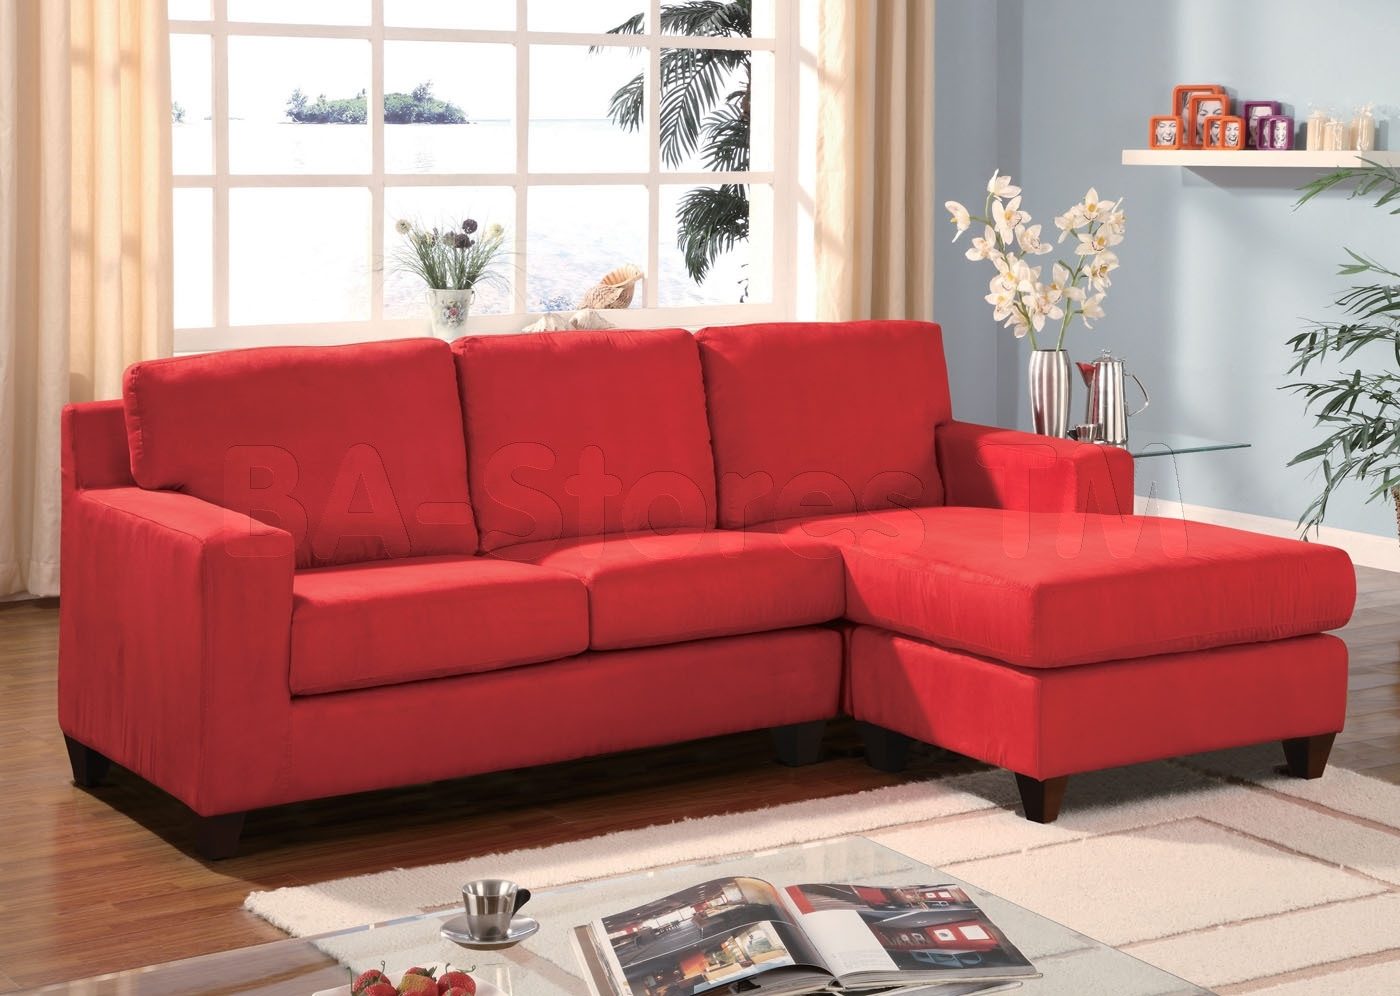 Red Sectional Sofa For Newly Wed Couples Home – Furnitureanddecors Pertaining To Red Sectional Sofas (Image 9 of 10)